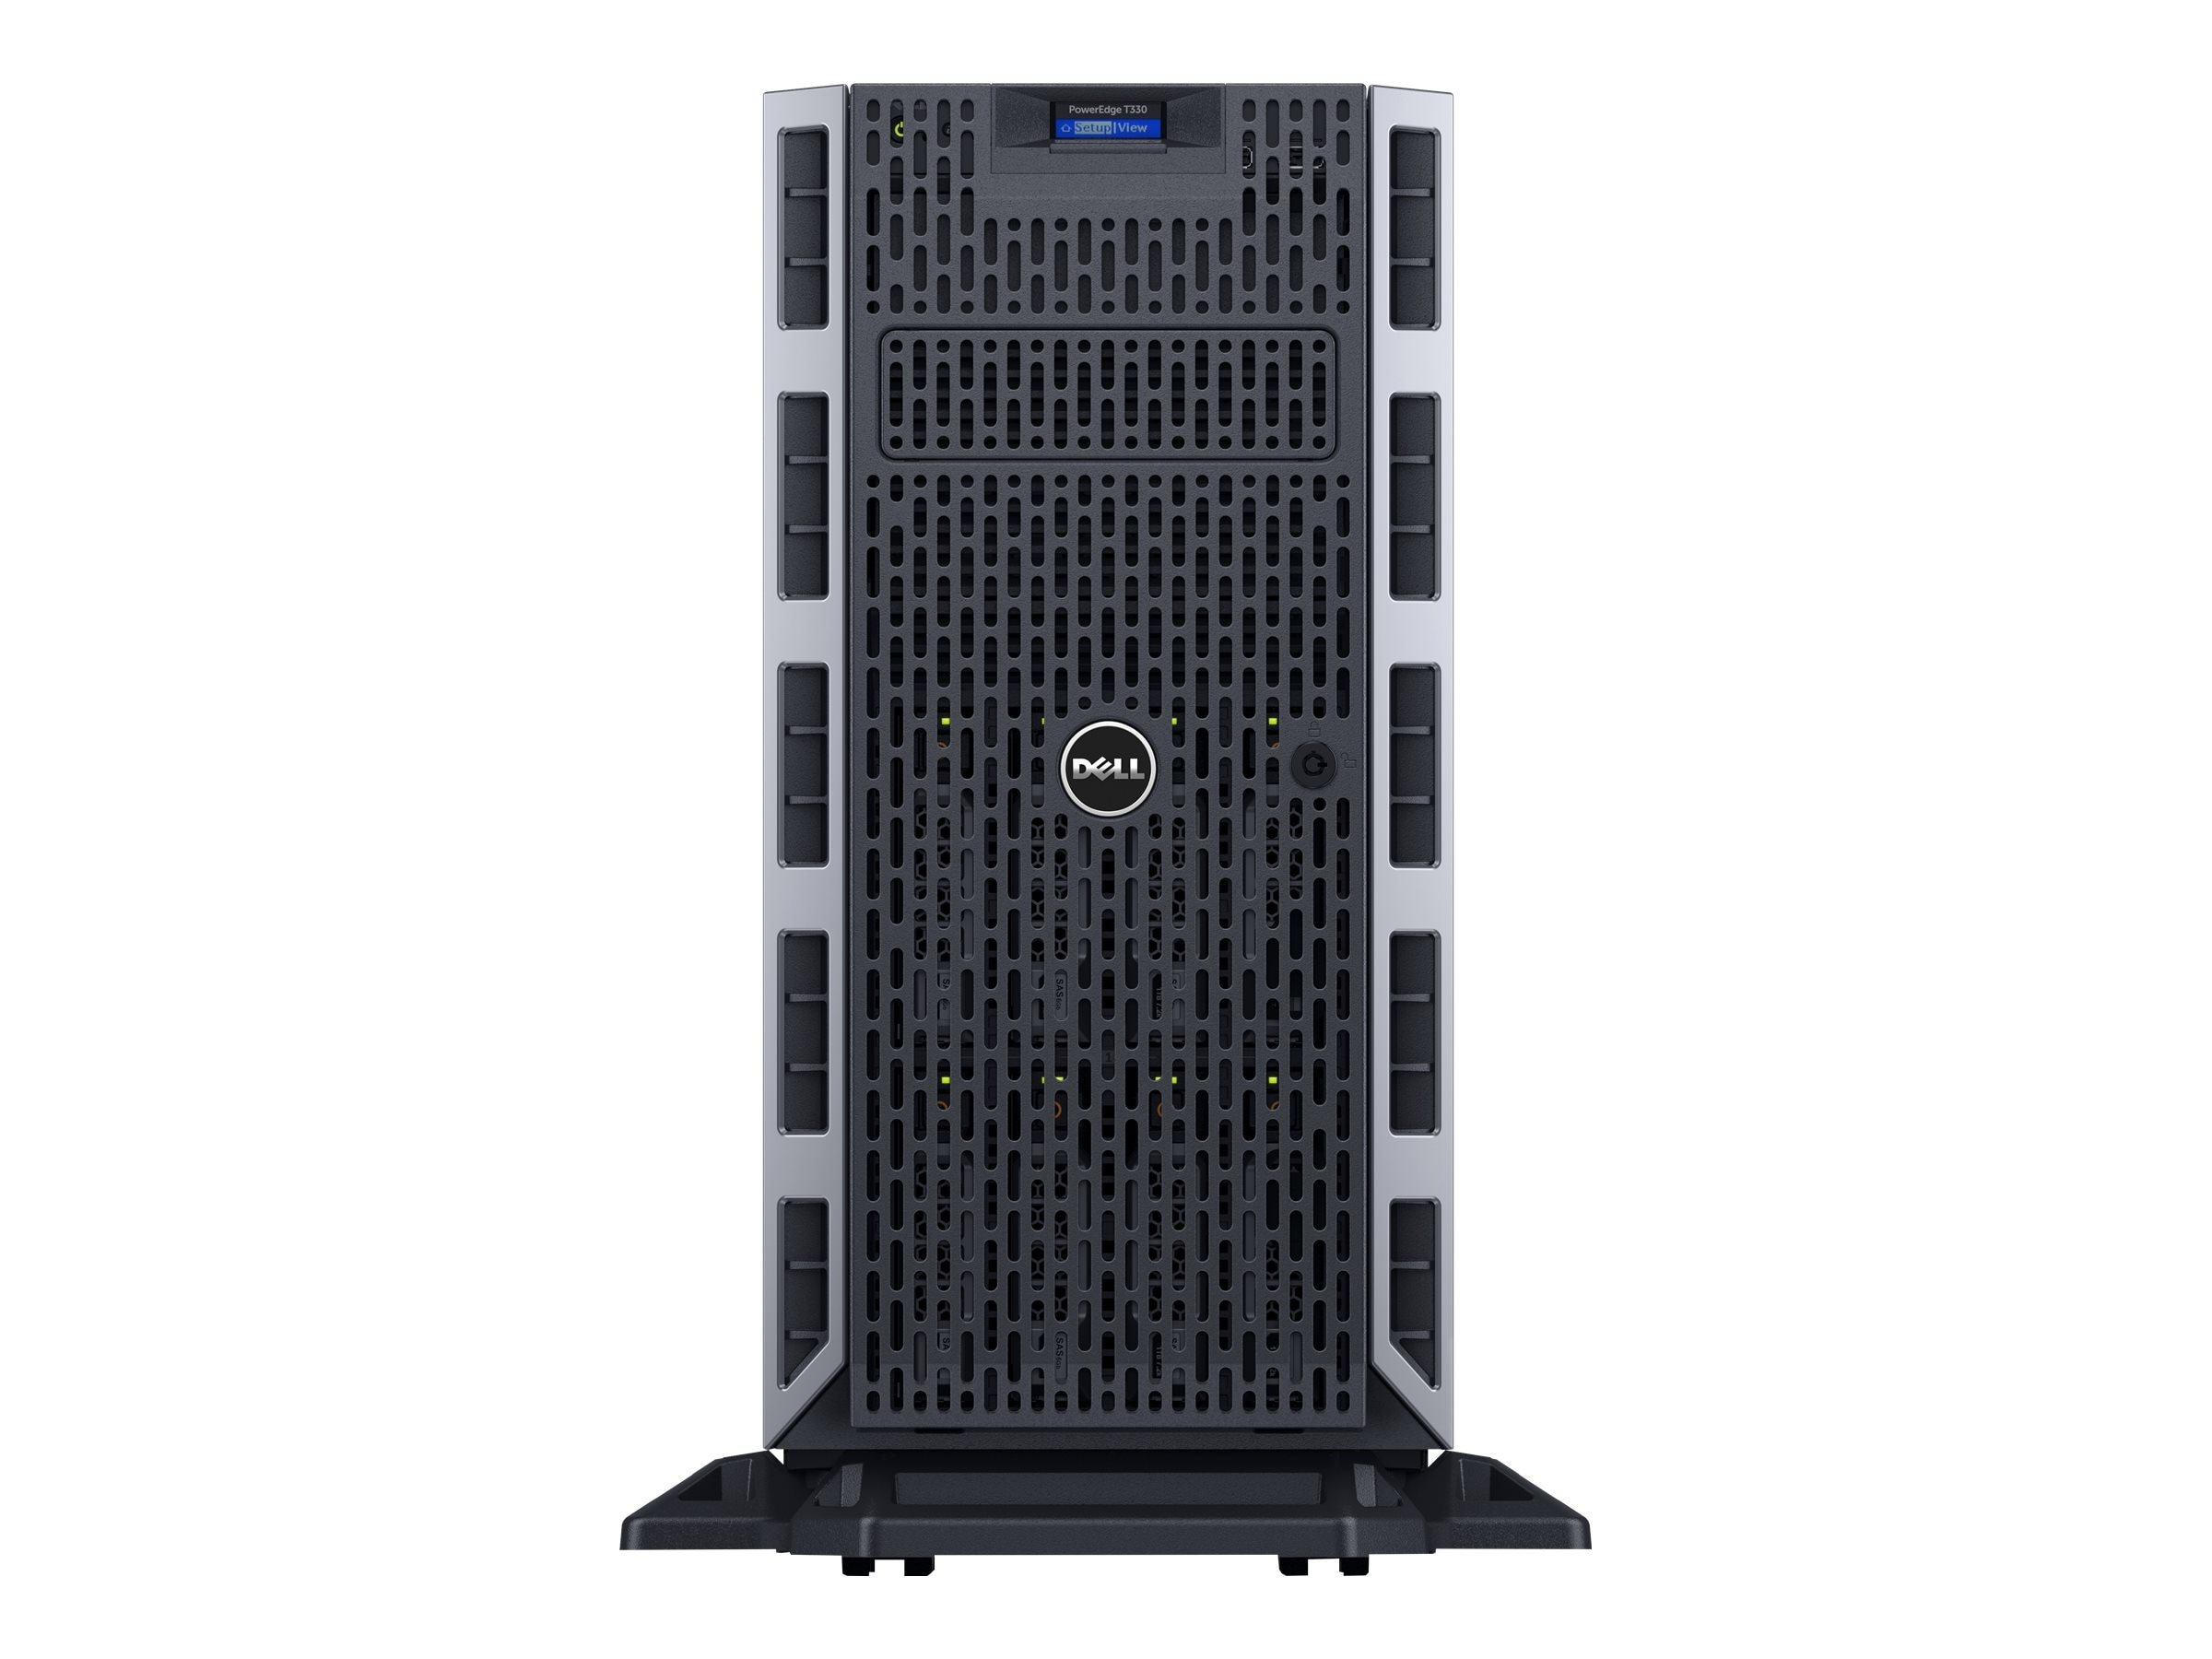 Dell PowerEdge T330 Tower Xeon QC E3-1240 v5 3.5GHz 8GB 1x300GB SAS 4x3.5 HP Bays H330 2xGbE 495W